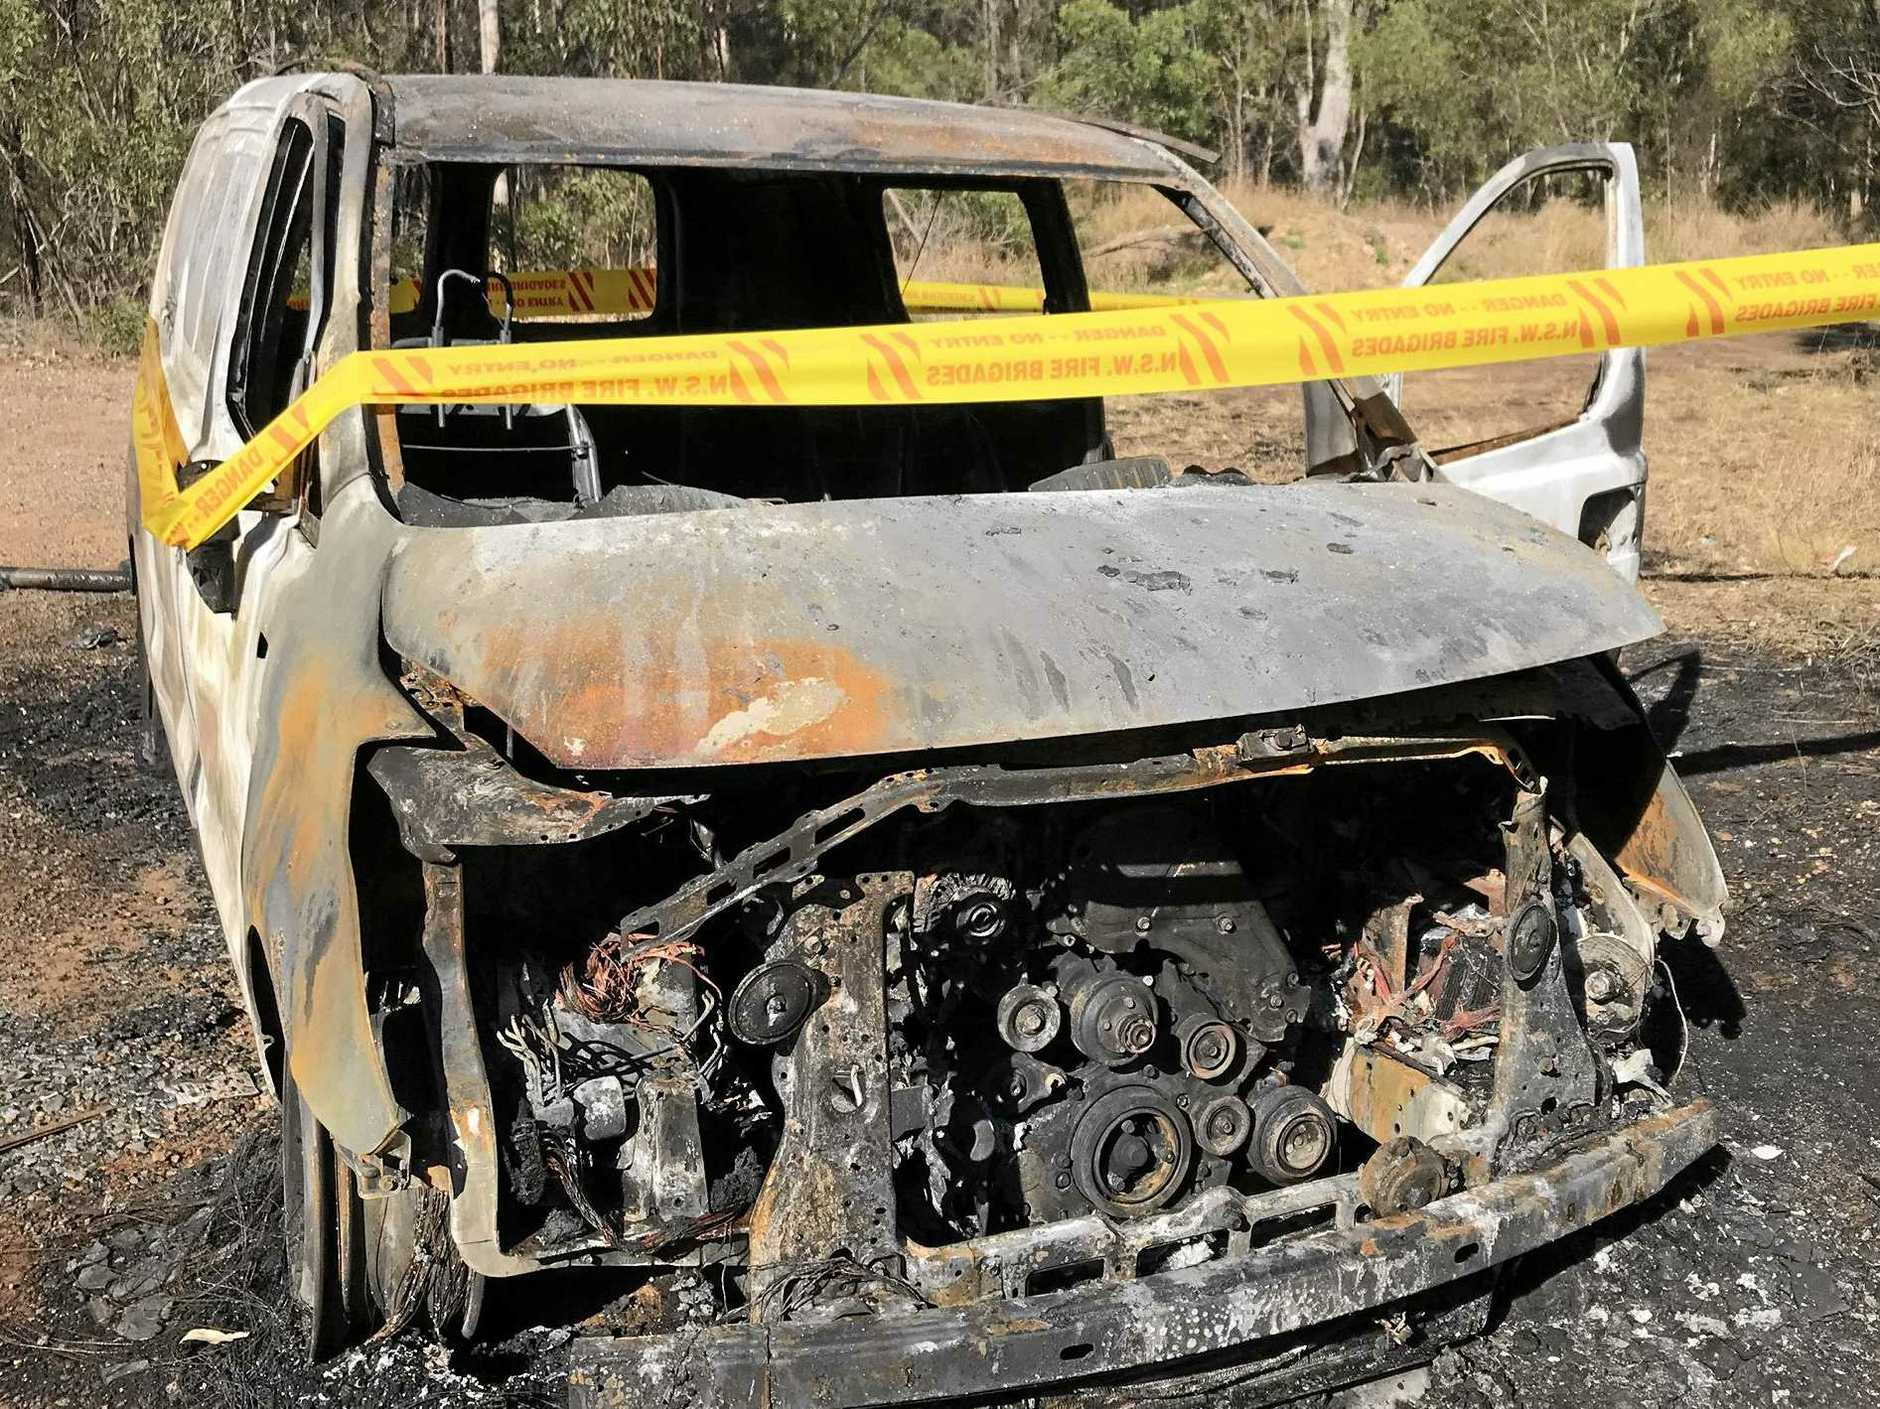 Emergency services respond to a vehicle fire in the northbound lane of the Pacific Highway, Glenugie. (Thursday, August 15)